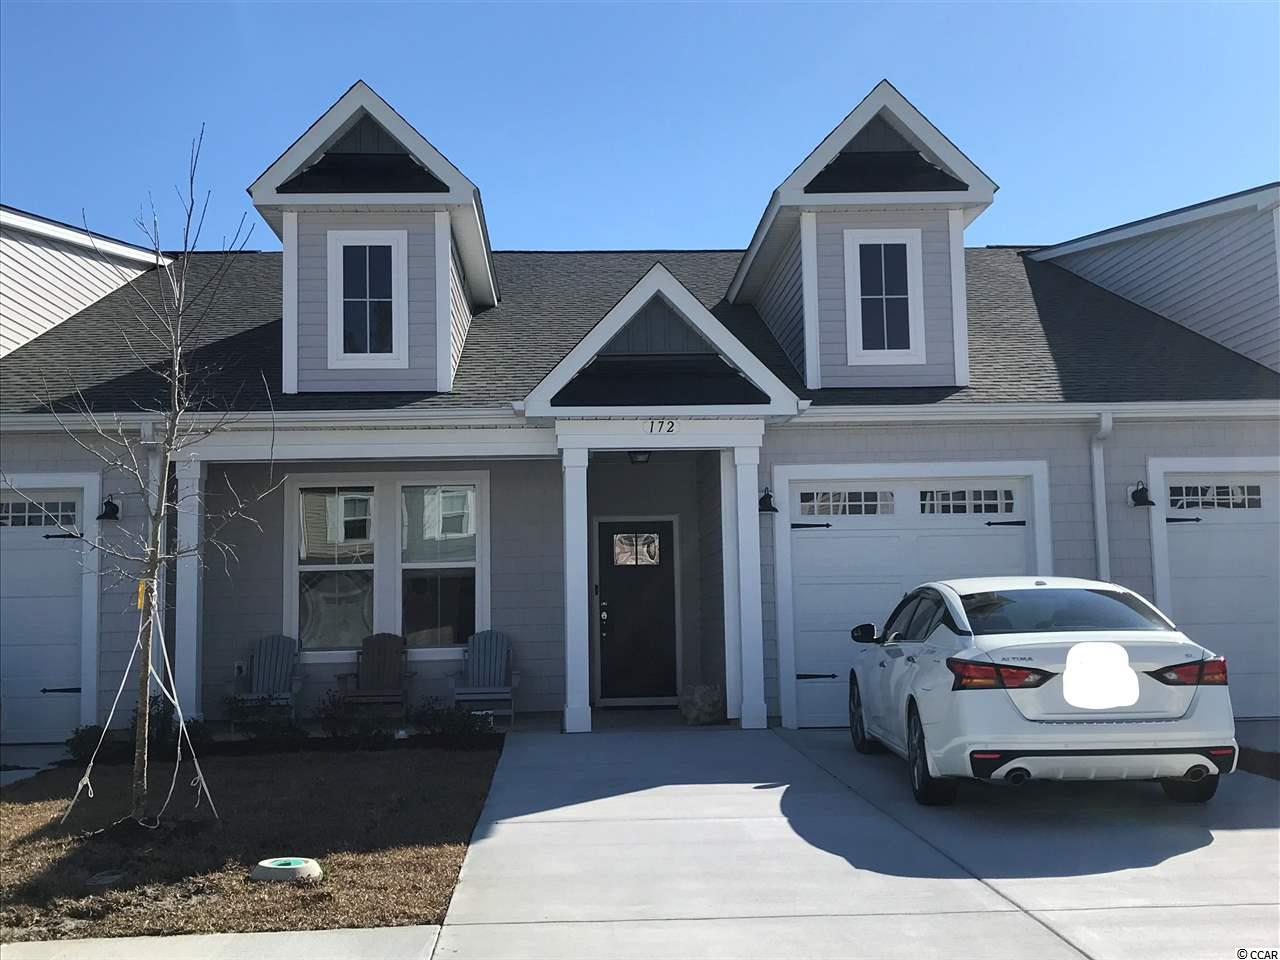 Take in the ocean breeze living in this single level Villa located in Bridgewater!  The Topsail features 2 bedrooms and 2 full bathrooms with an open kitchen, dining and great room. Beautiful fireplace and tray ceiling in the Great Room. Master Bath has a 5 foot walk in tile shower with seat.  Gas range inKkitchen! With over 1400 heated sq. ft. this coastal-living home features both a master suite and an additional bedroom all on one level. Enter The Topsail from your covered front porch or your one car garage. Easily entertain or host large gatherings with an open living and kitchen area. A large Island offers additional seating. Whatever your needs may be, this interior model with ceiling is the home for you! Open relaxing rooms offer plenty of space for you to experience the natural beauty of coastal living.